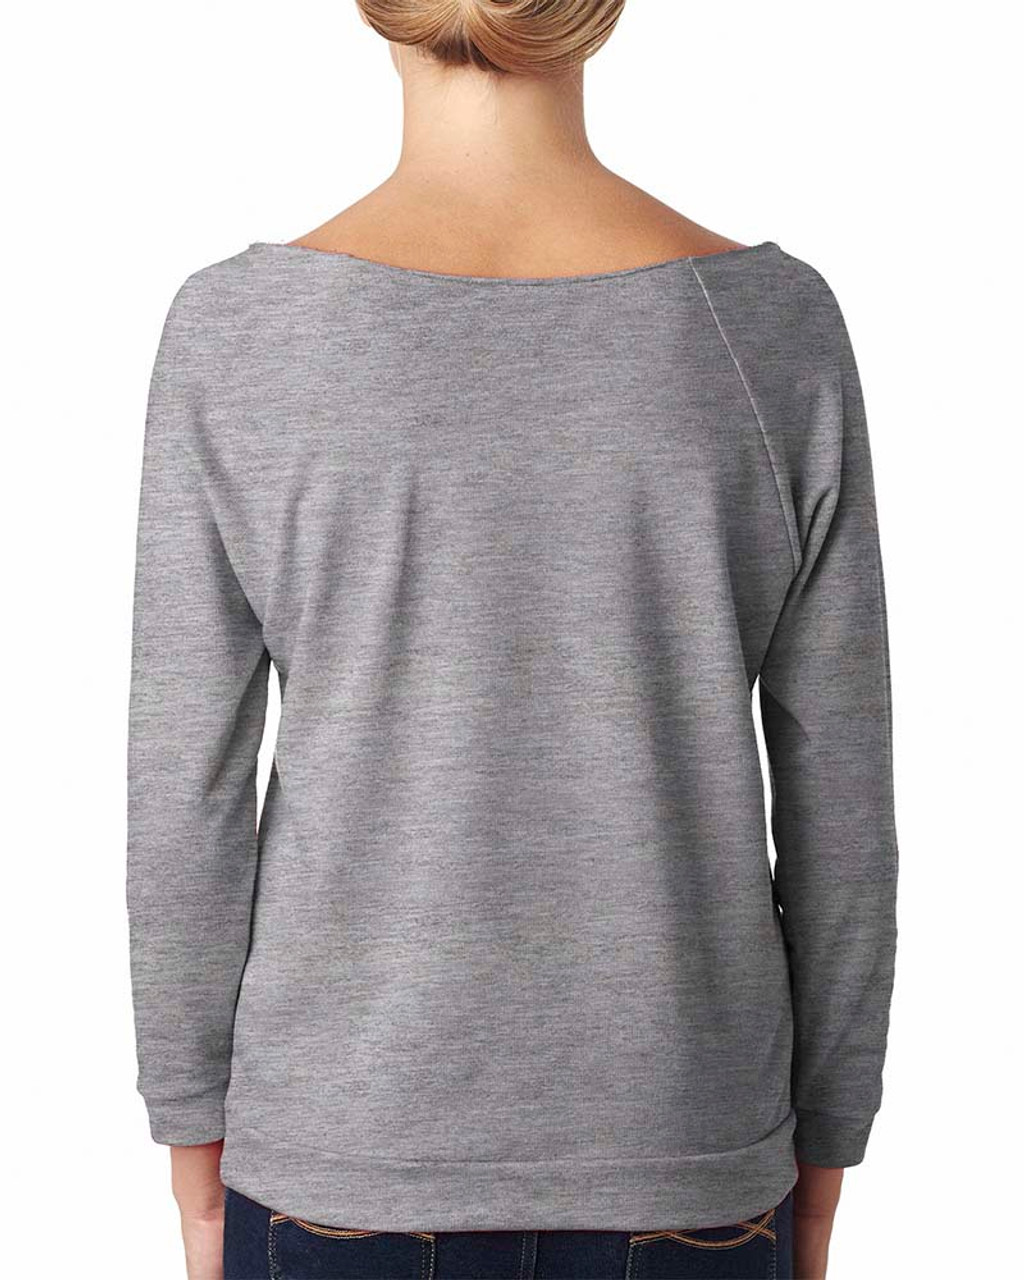 Heather Grey, Back - 6951 Next Level Ladies' French Terry Raw-Edge 3/4-Sleeve Raglan Shirt  | BlankClothing.ca